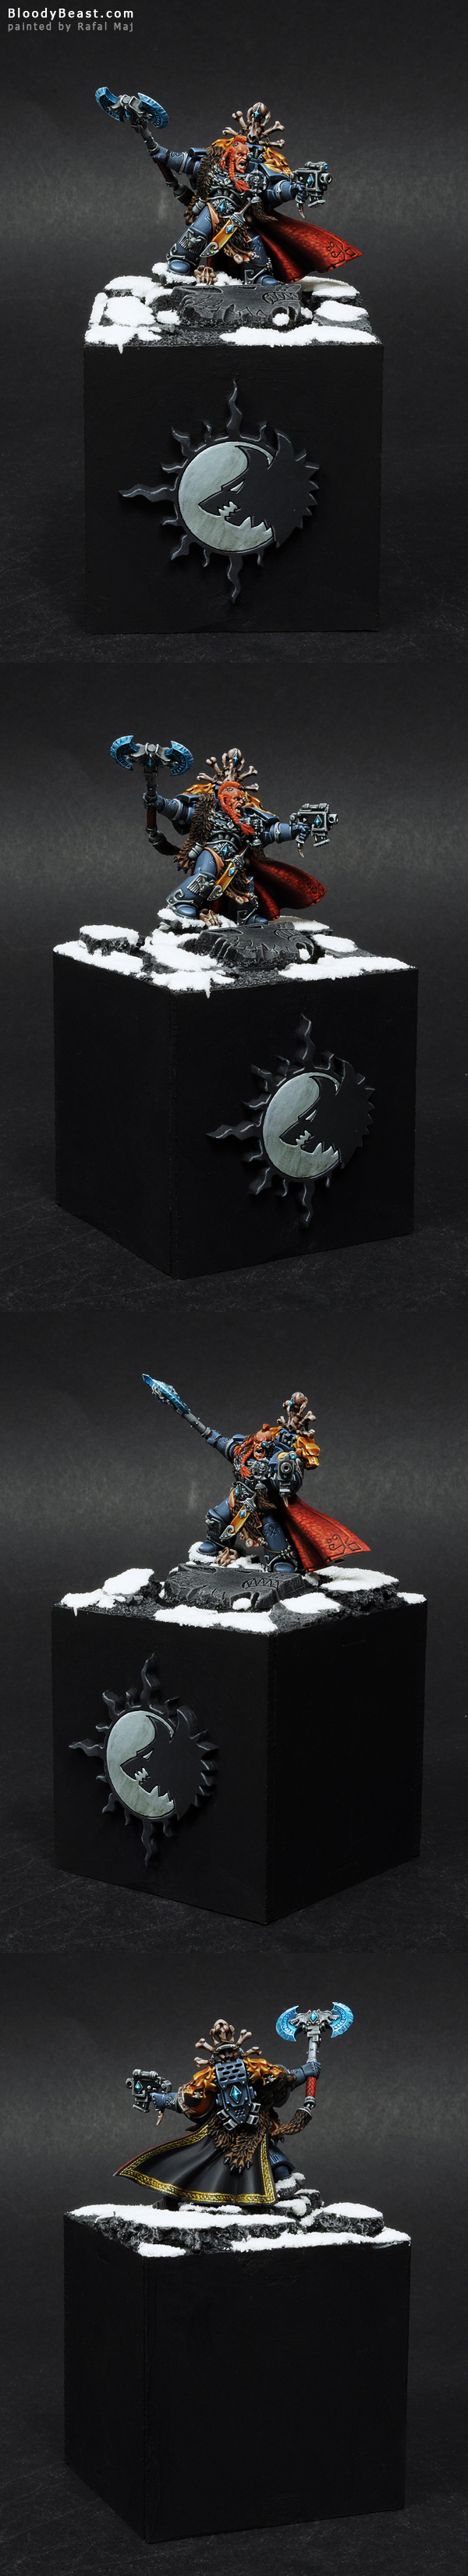 Space Wolves Krom Dragongaze on Plinth painted by Rafal Maj (BloodyBeast.com)